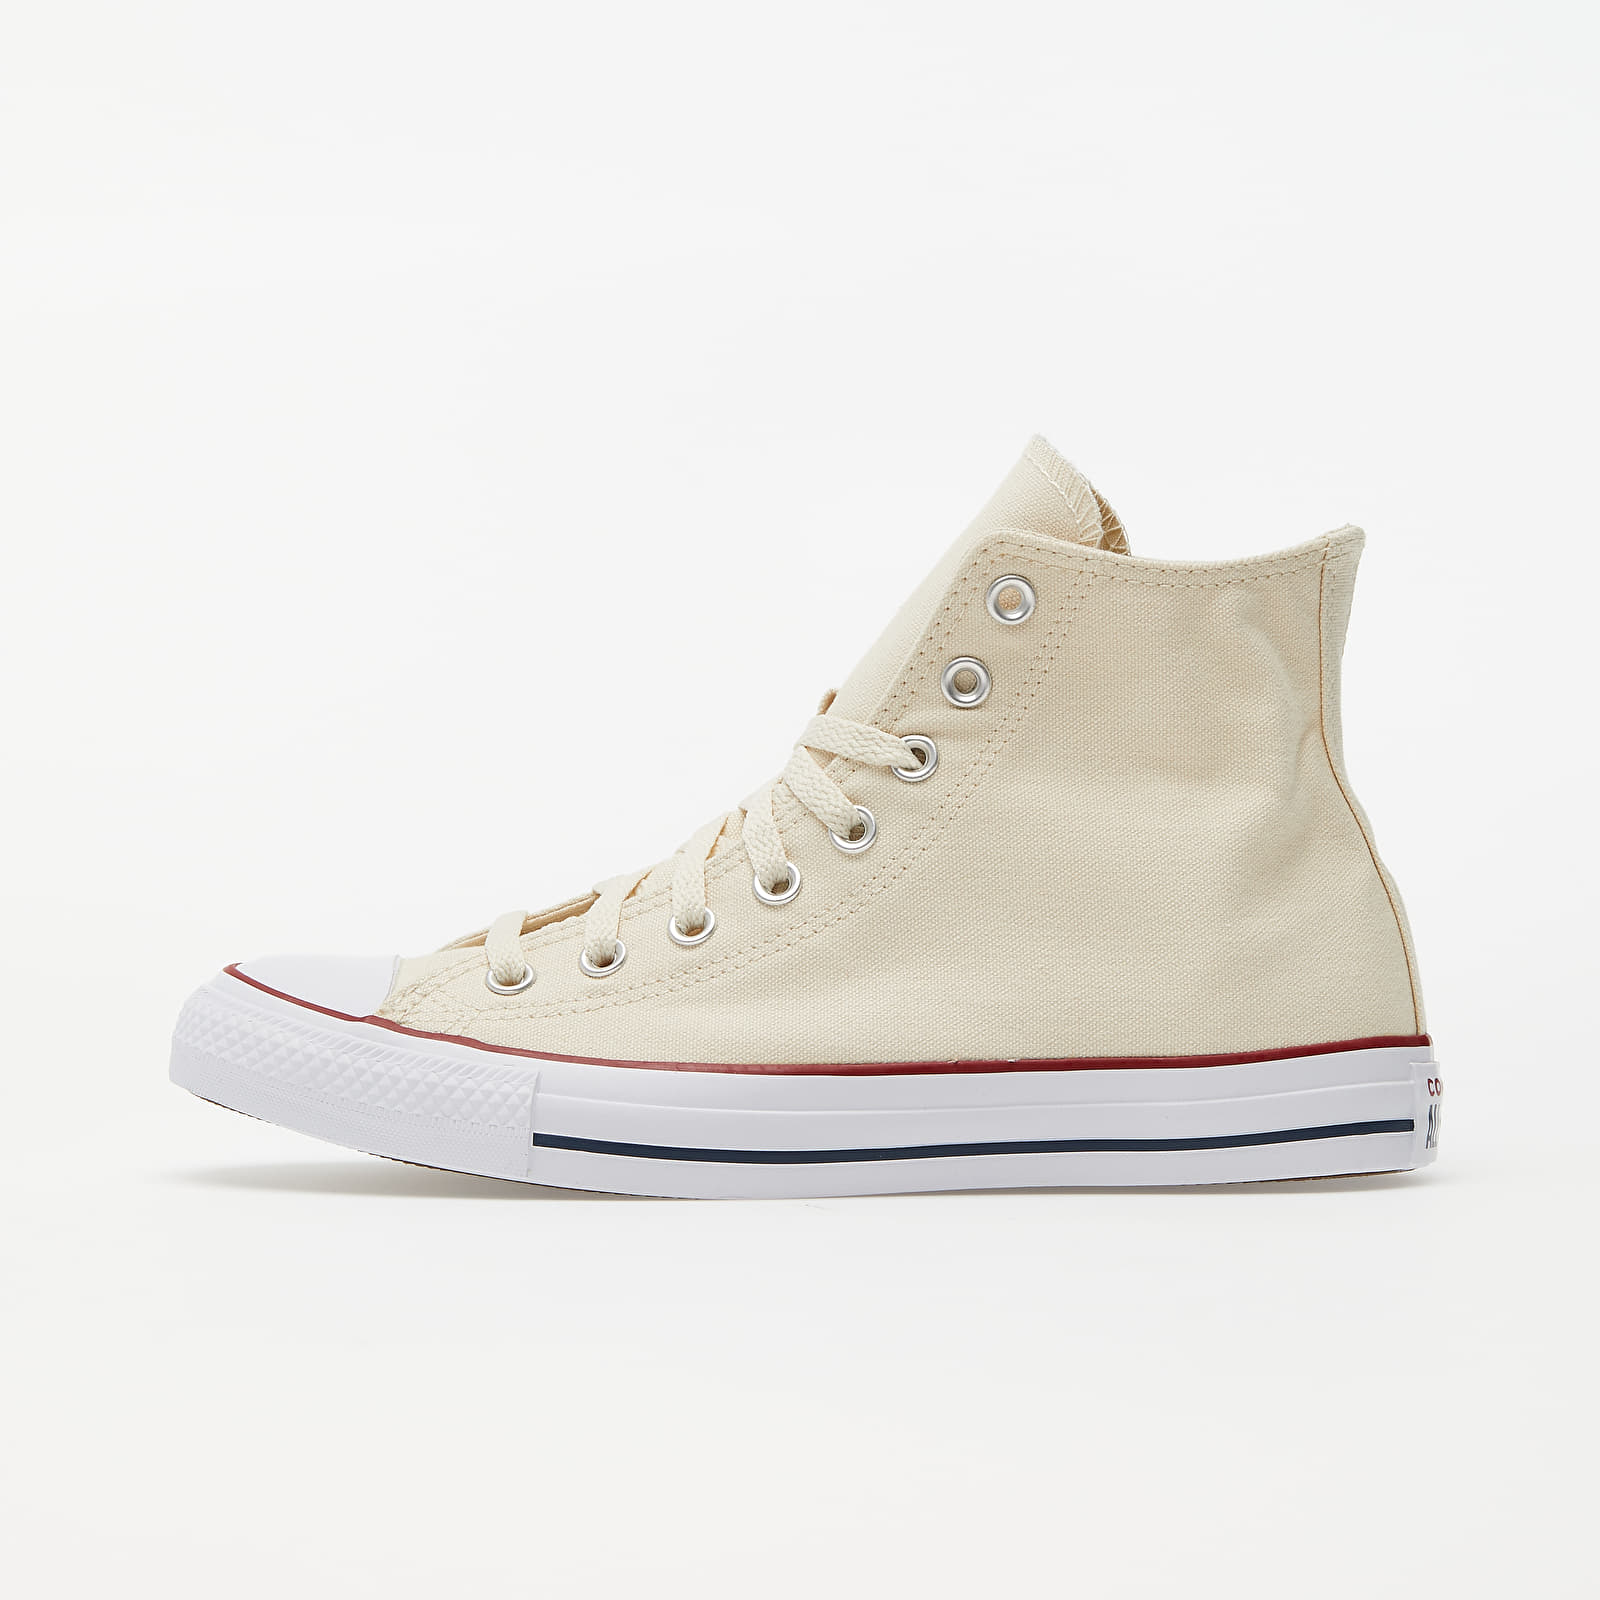 Converse Chuck Taylor All Star Natural 159484C